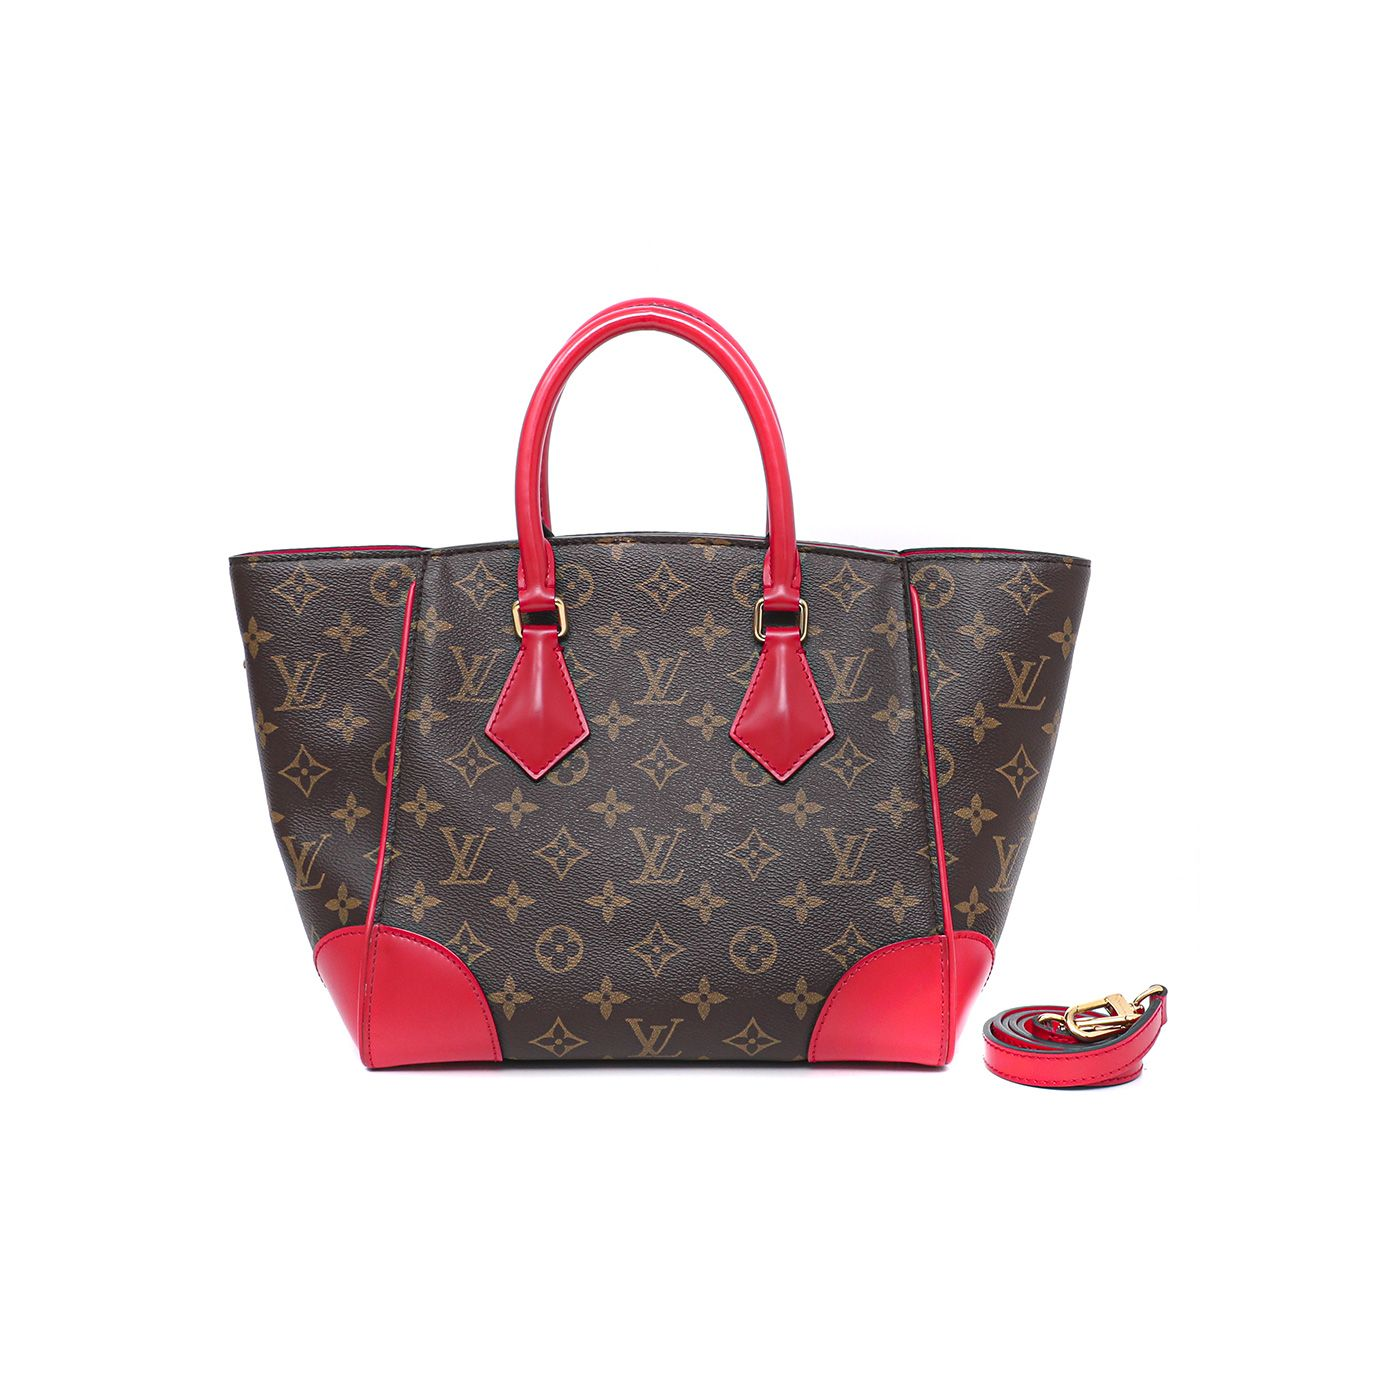 Louis Vuitton Bicolor Monogram Phenix Bag